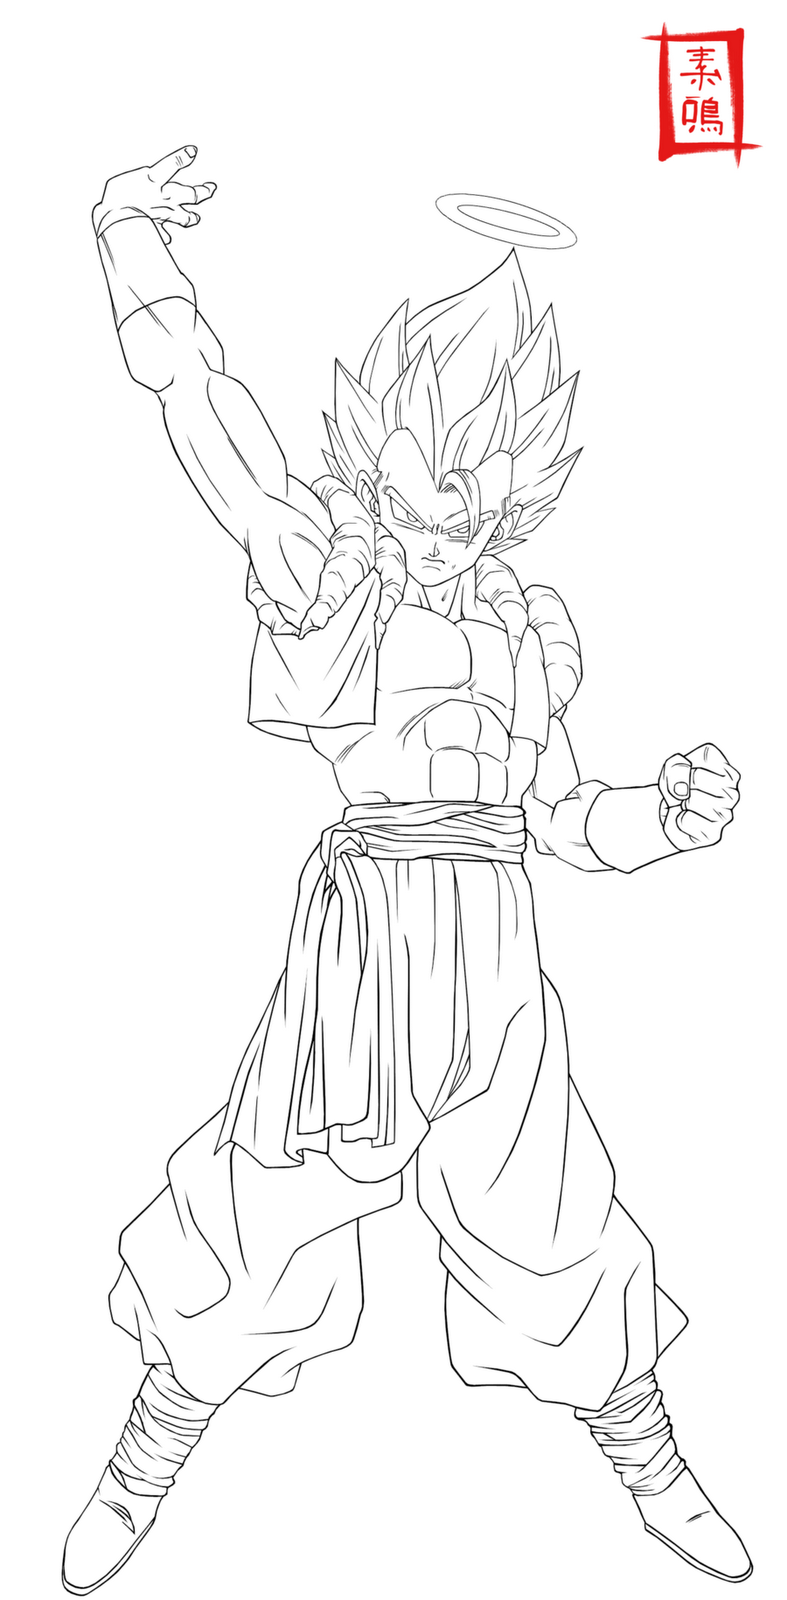 dragon ball z gogeta coloring pages - dibujos de dragon ball z noviembre 2012